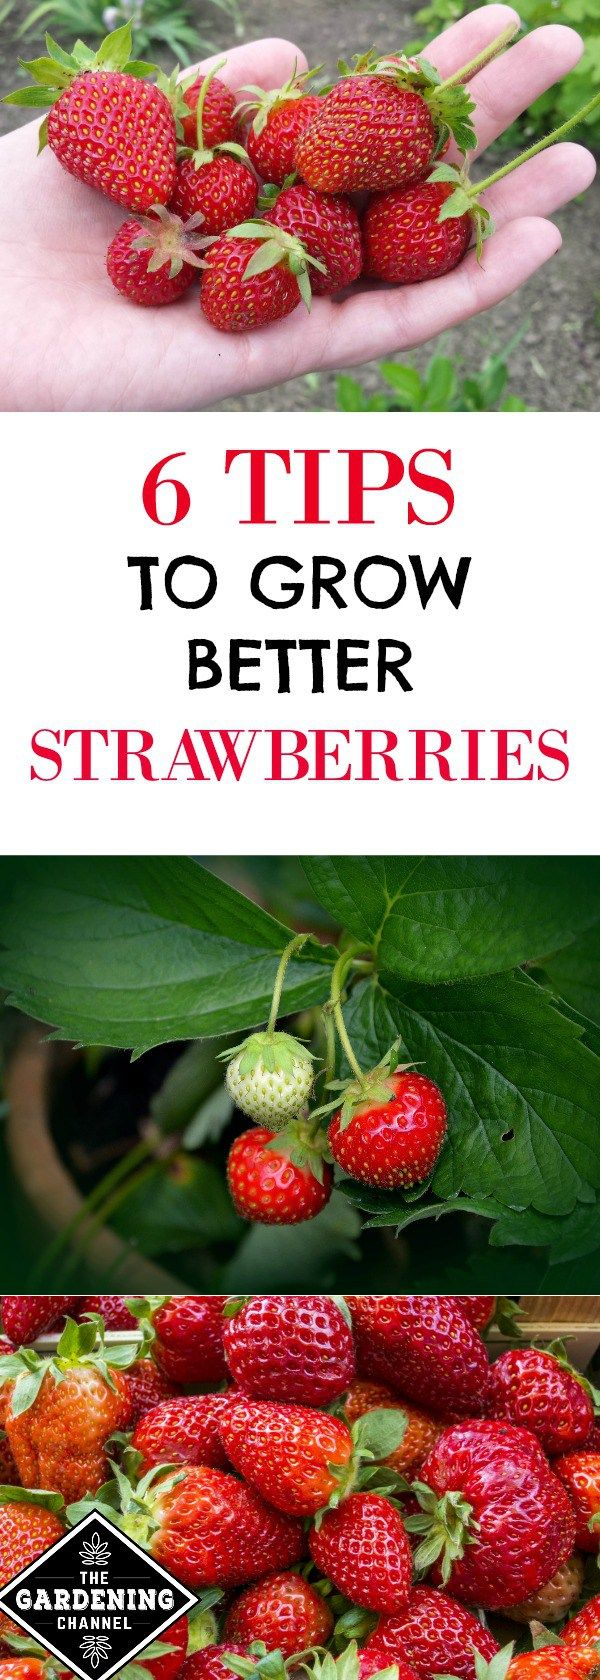 Strawberry Growing Tips. Learn where to plant strawberries, soil requirements, how to water, how to protect from pests and more.